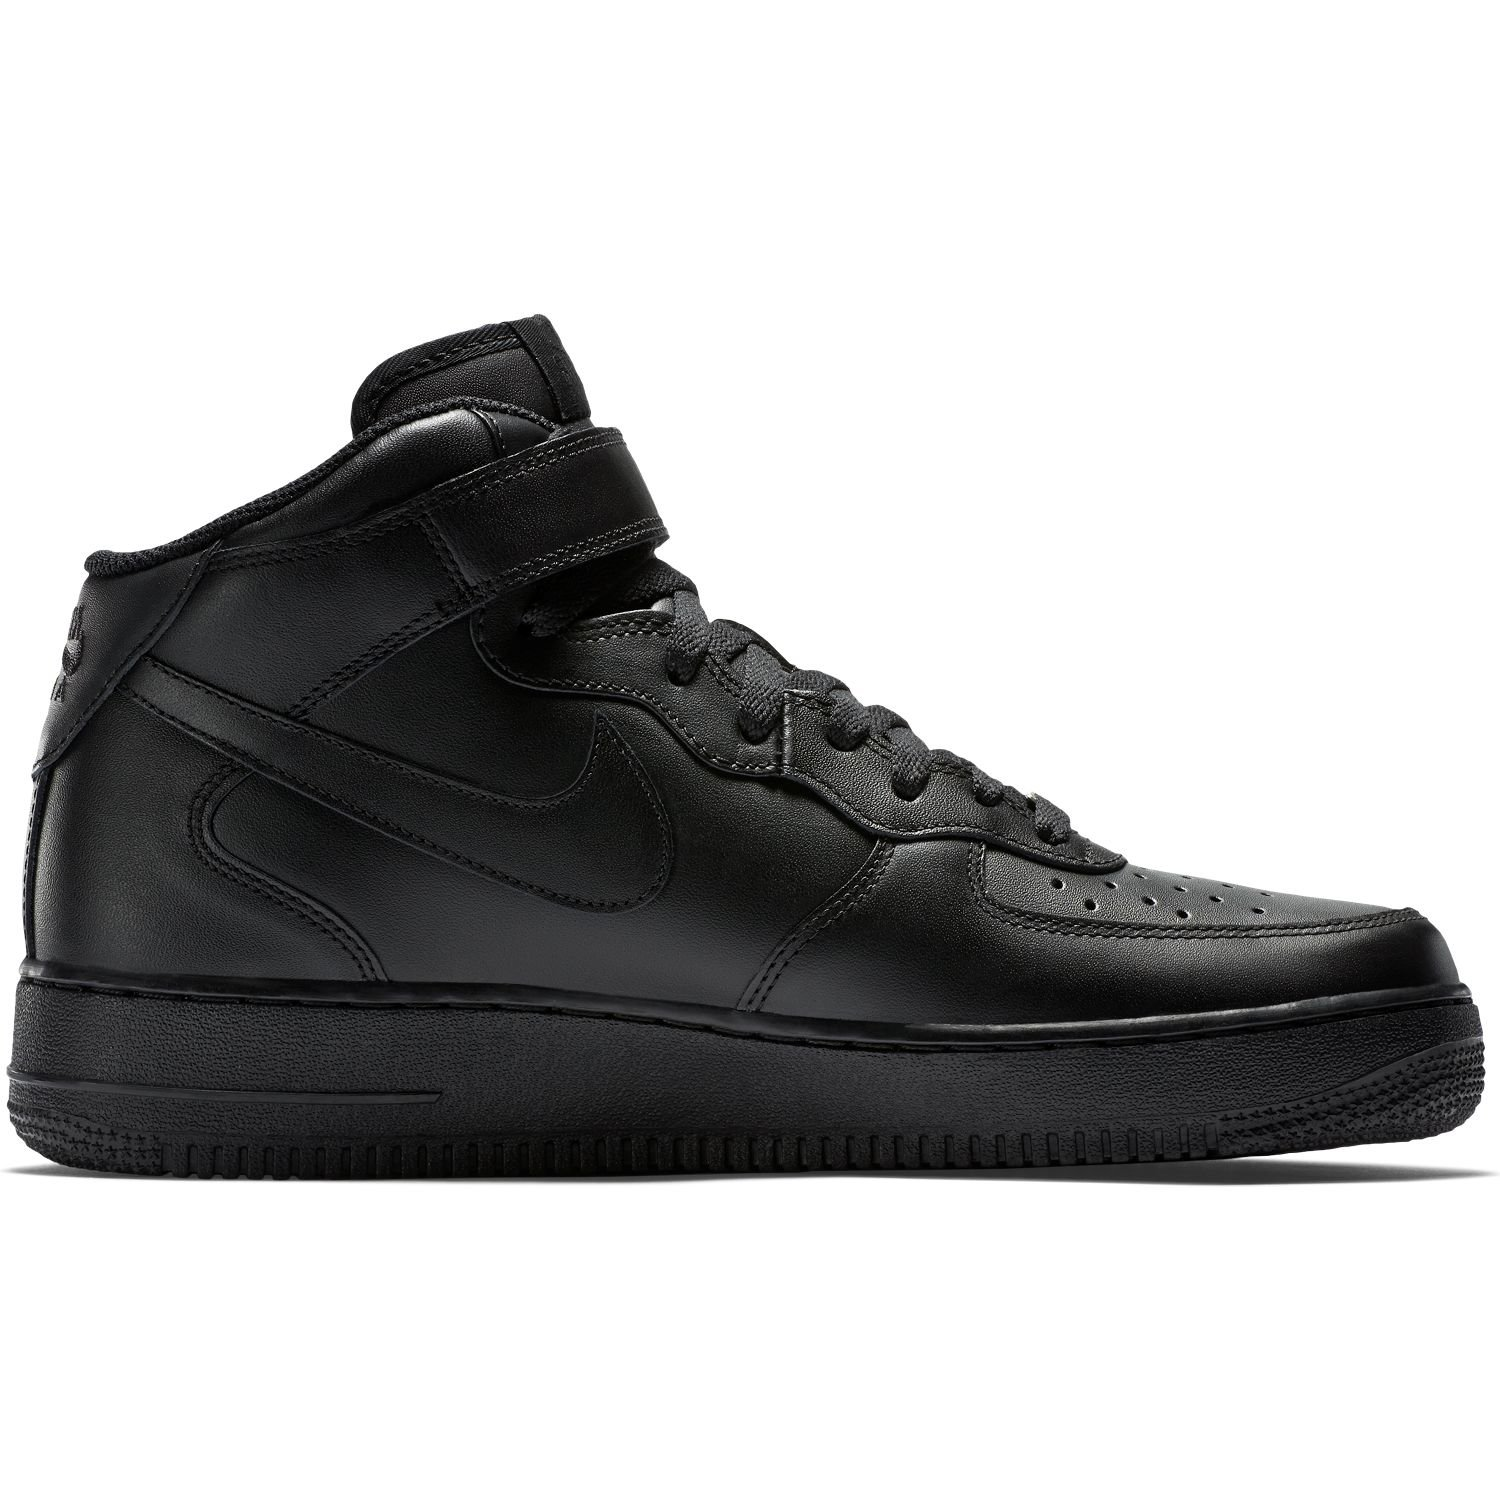 BUTY MĘSKIE NIKE AIR FORCE 1 MID 07 ALL BLACK 315123-001